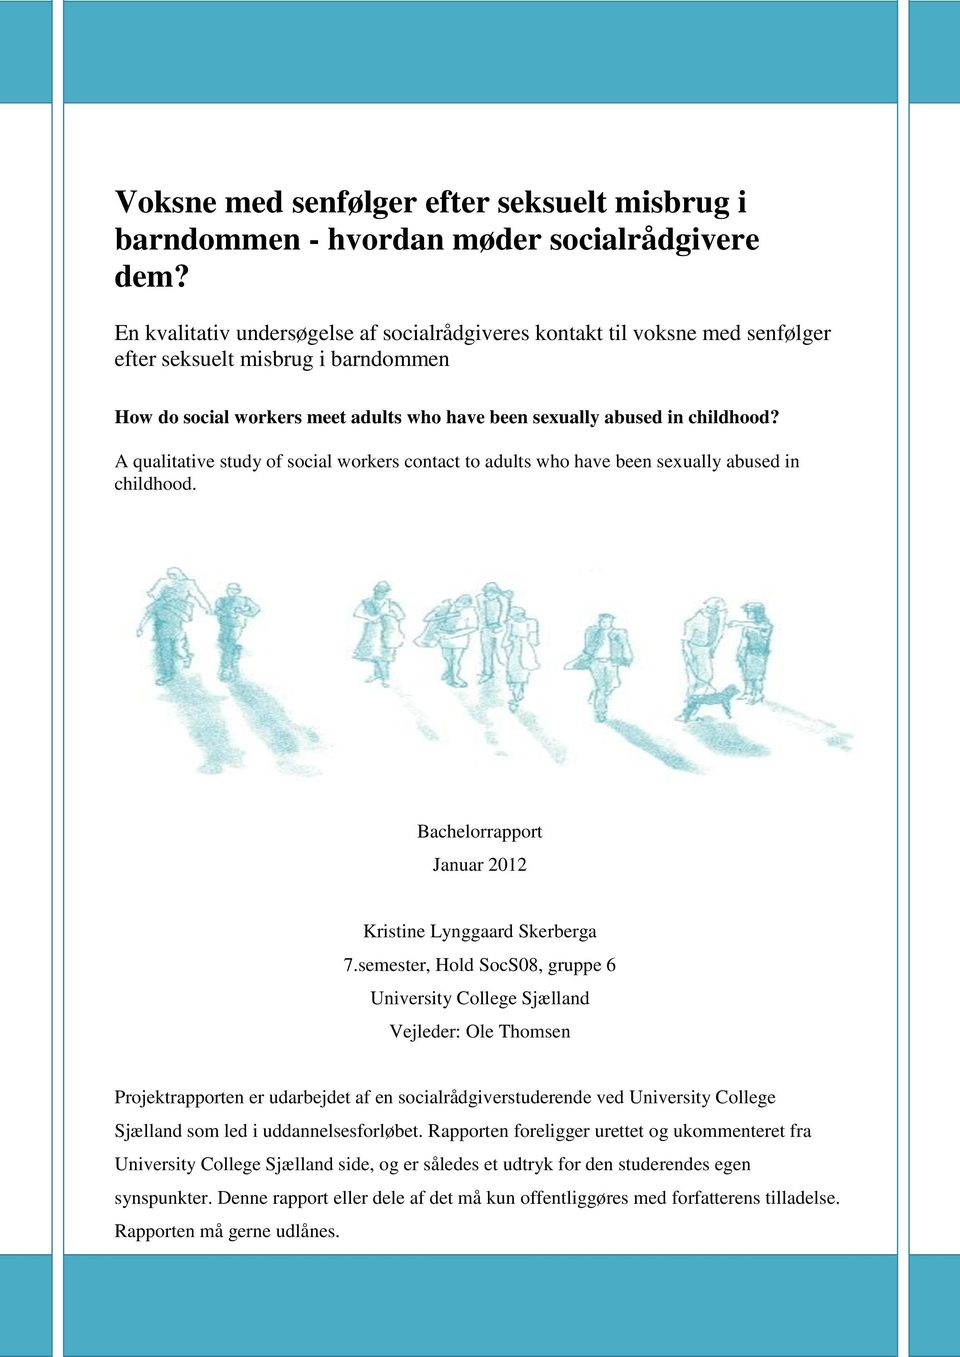 A qualitative study of social workers contact to adults who have been sexually abused in childhood. Bachelorrapport Januar 2012 Kristine Lynggaard Skerberga 7.